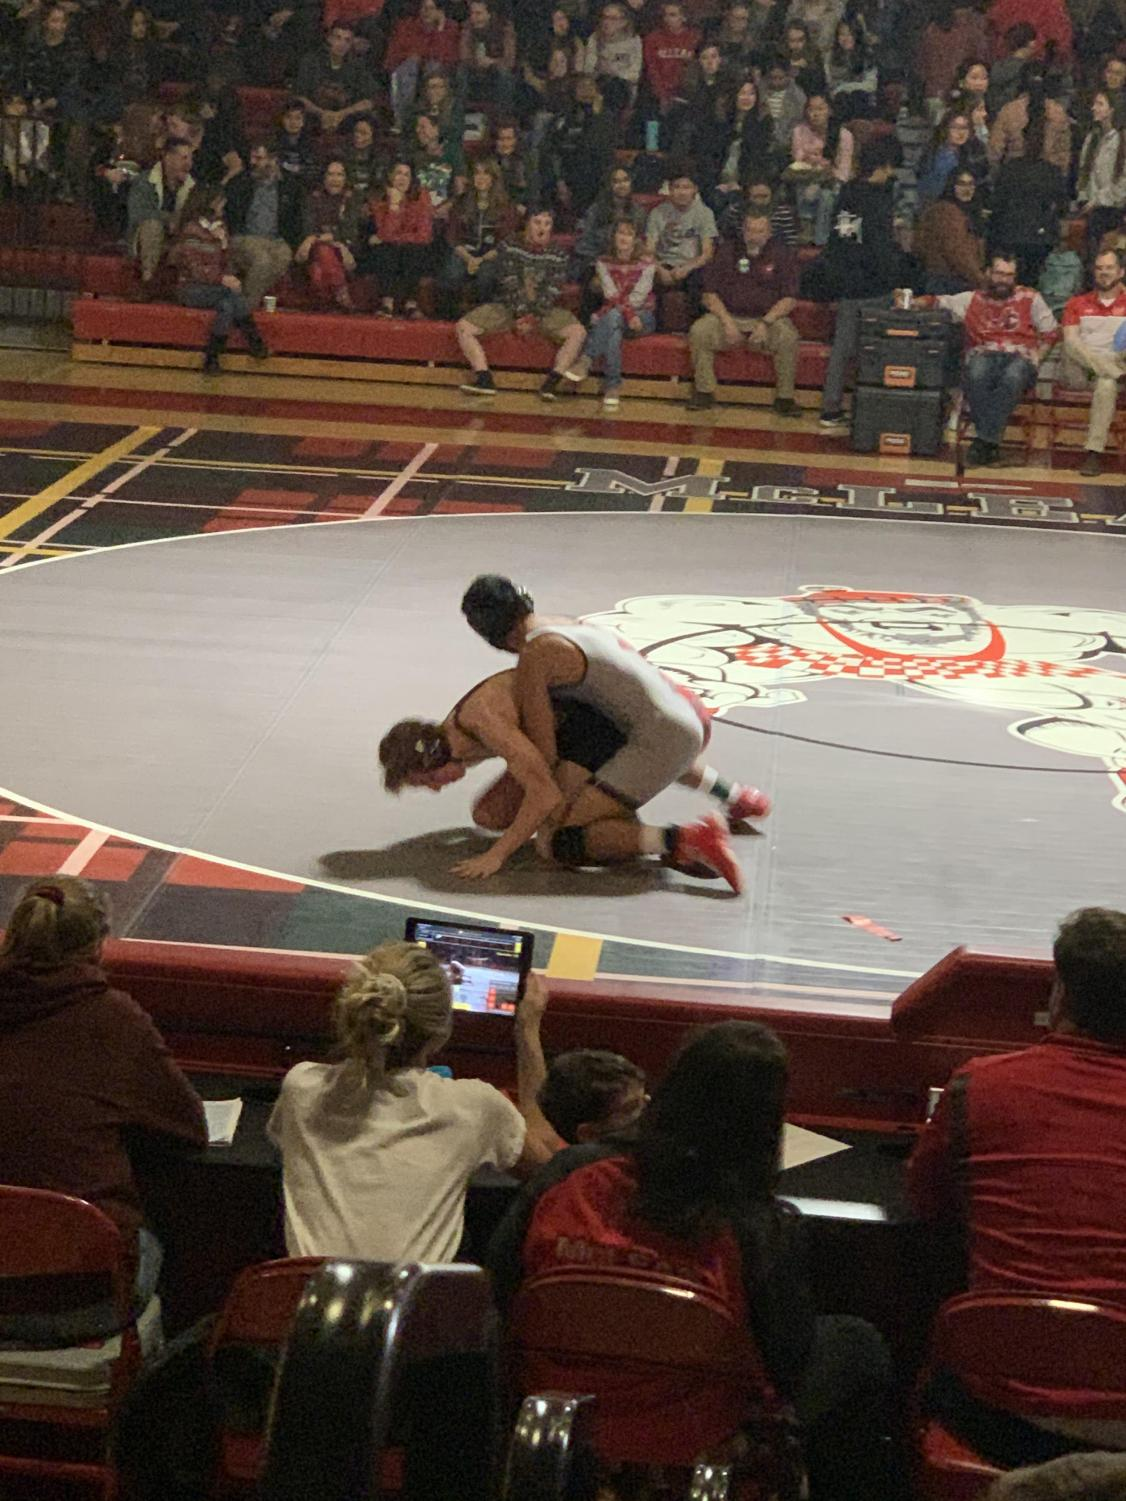 A McLean wrestler secures two points for a take down. McLean was able to score off their take downs throughout the night.